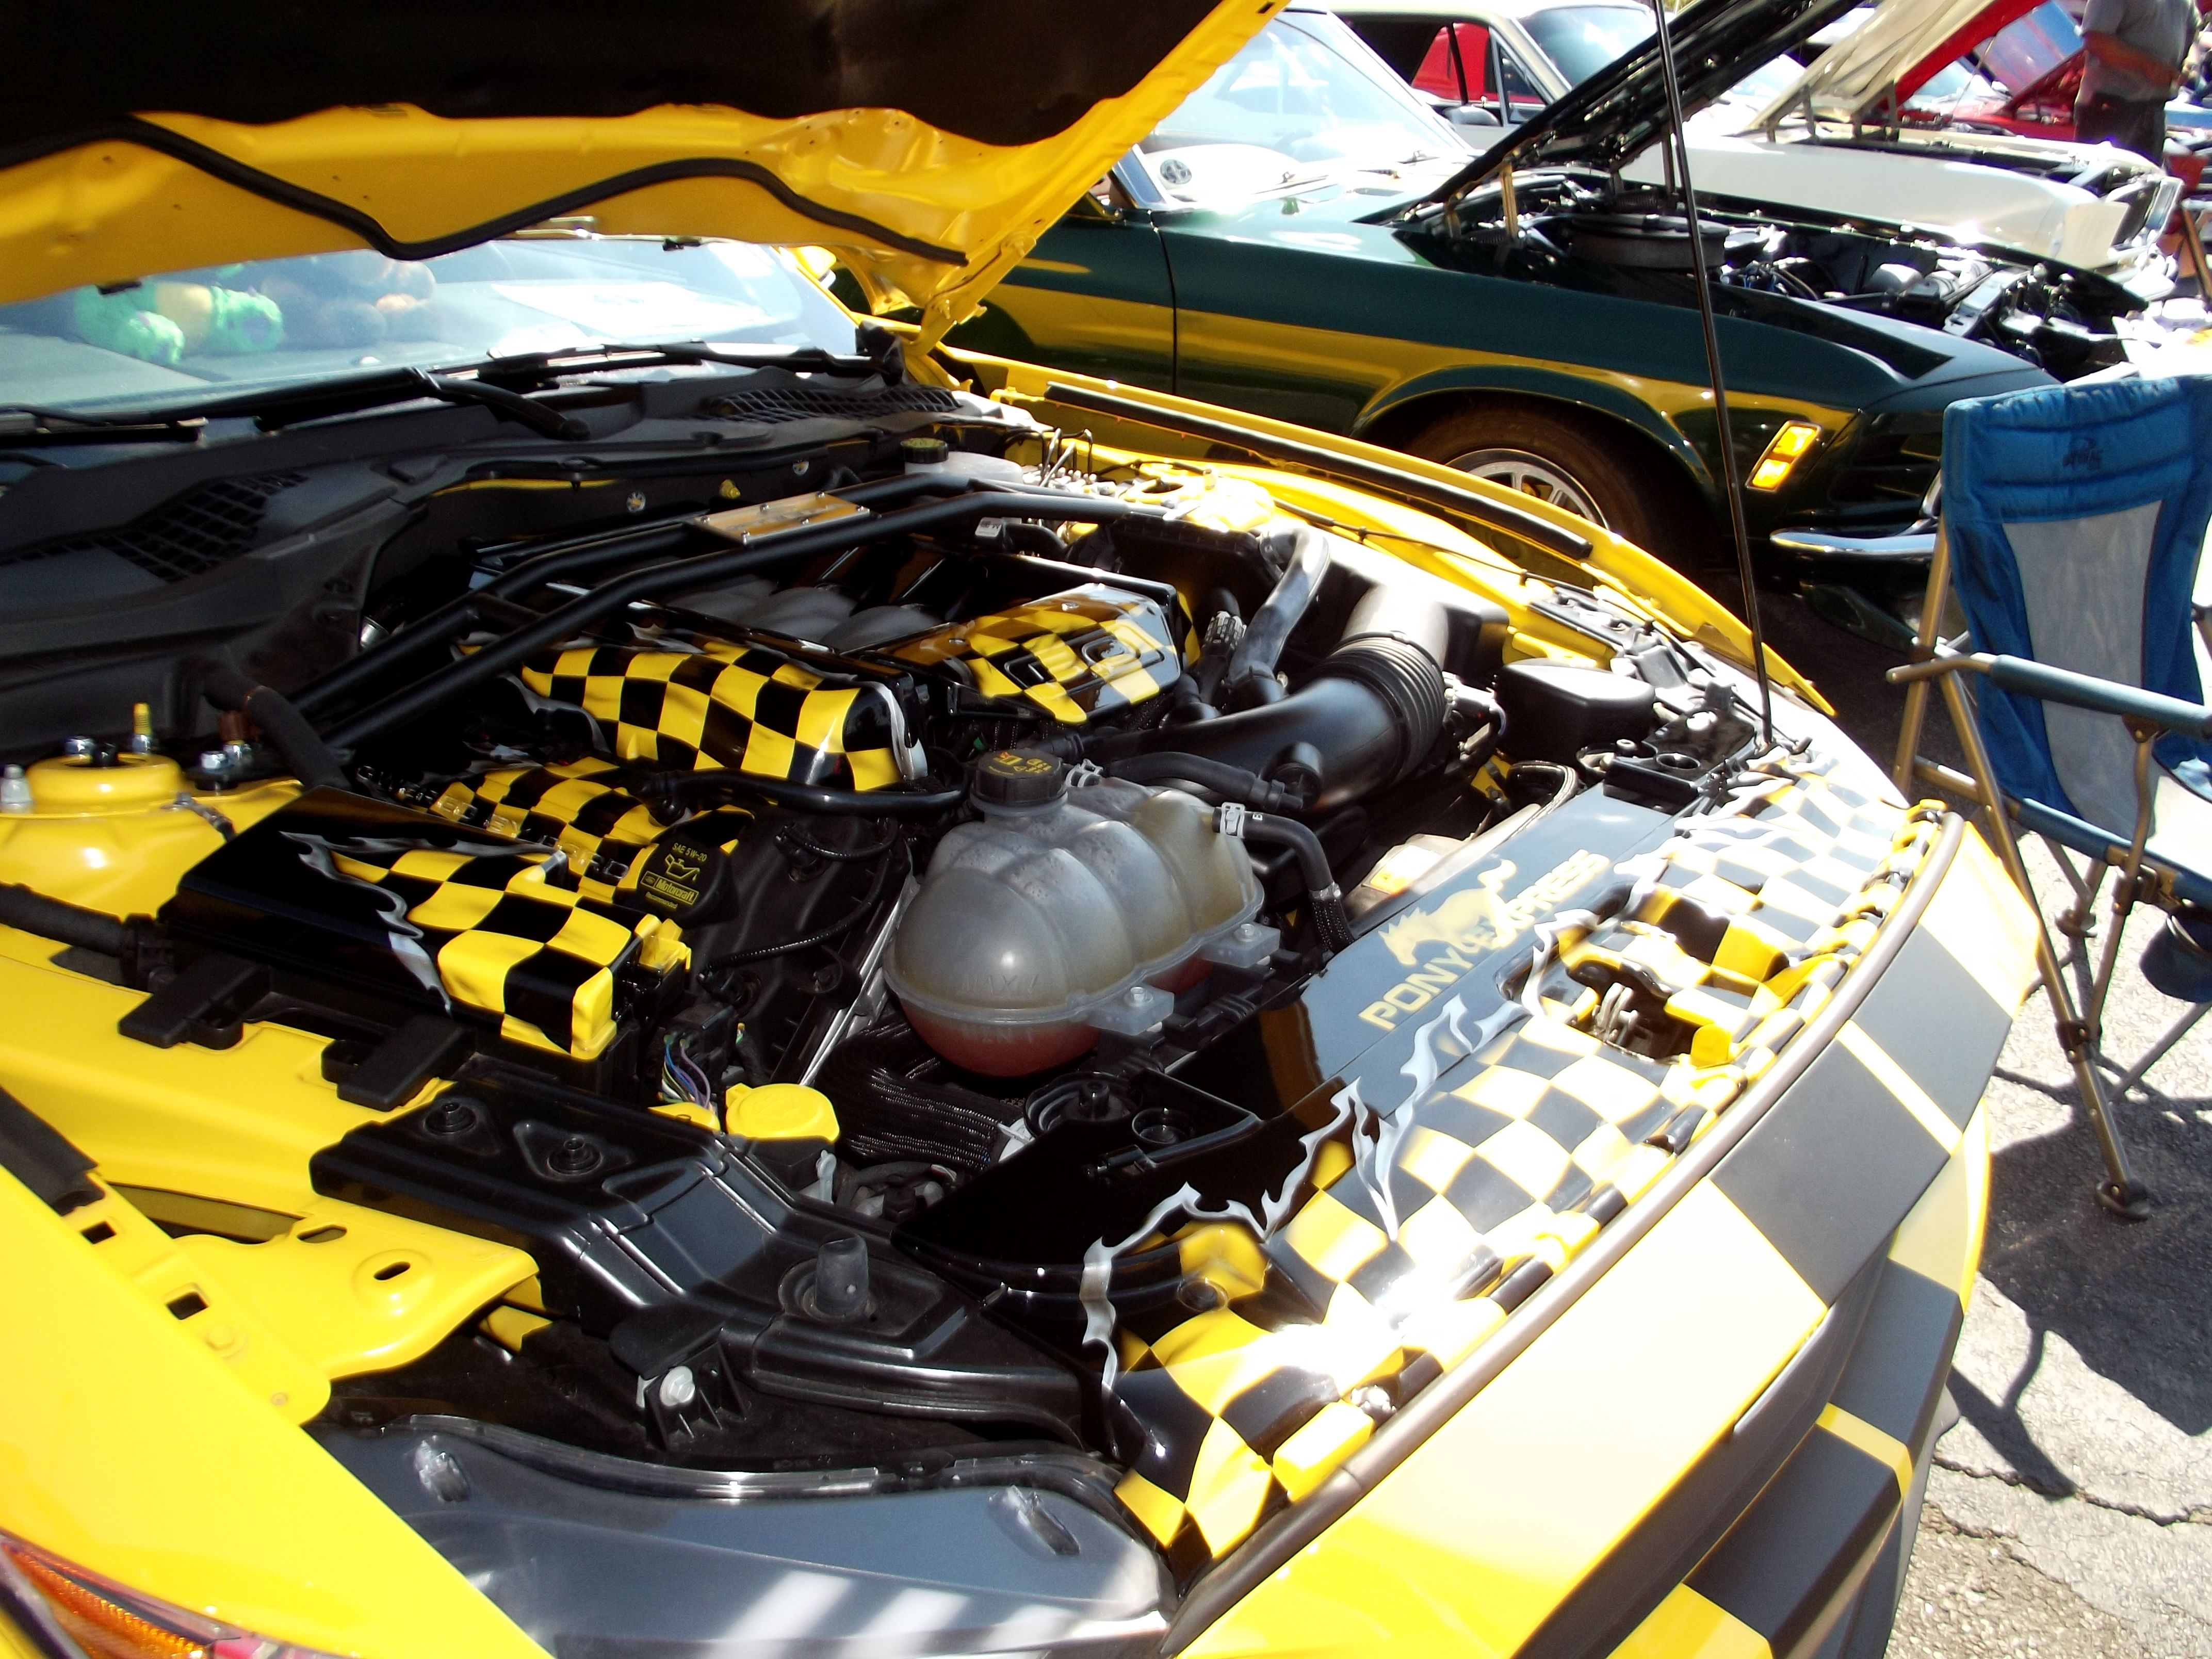 Check Out This Beauty Black Yellow Ripped Checkered Flag Design C7 Corvette Painted Fuse Box Cover We Can Make